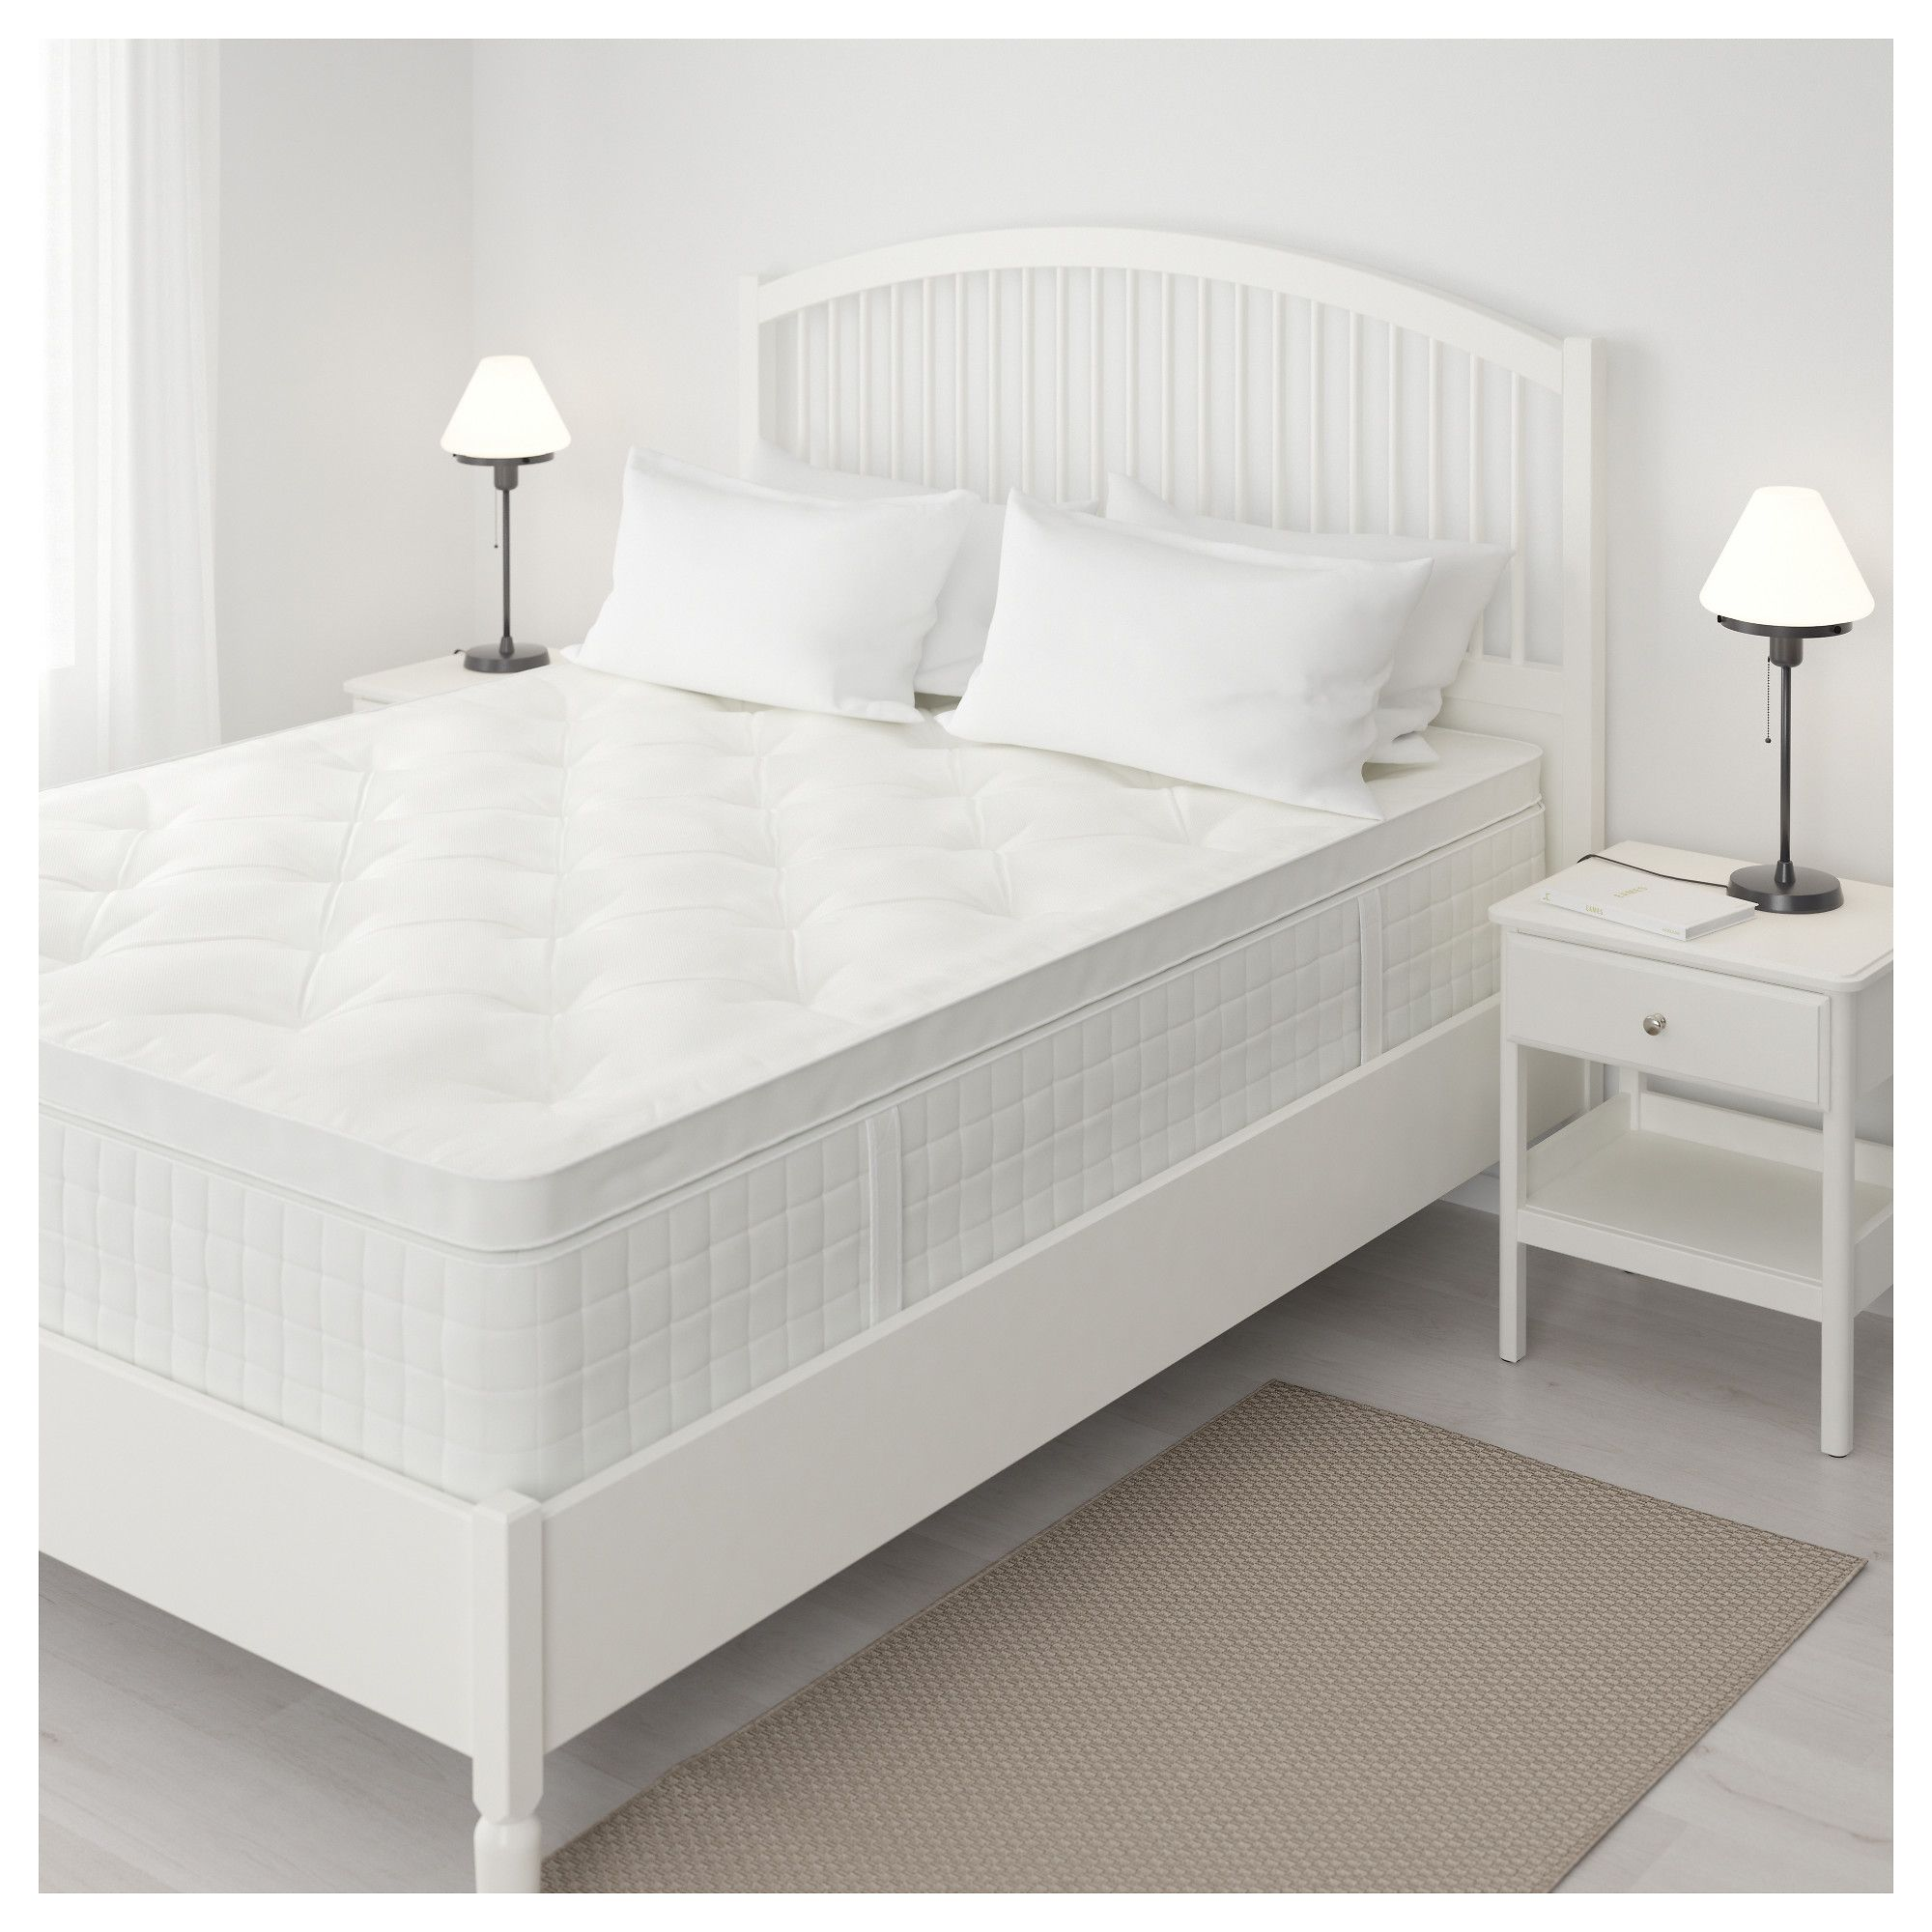 Hjellestad Pillowtop Mattress Medium Firm White Queen Ikea Mattress Pillow Top Mattress Ikea Mattress